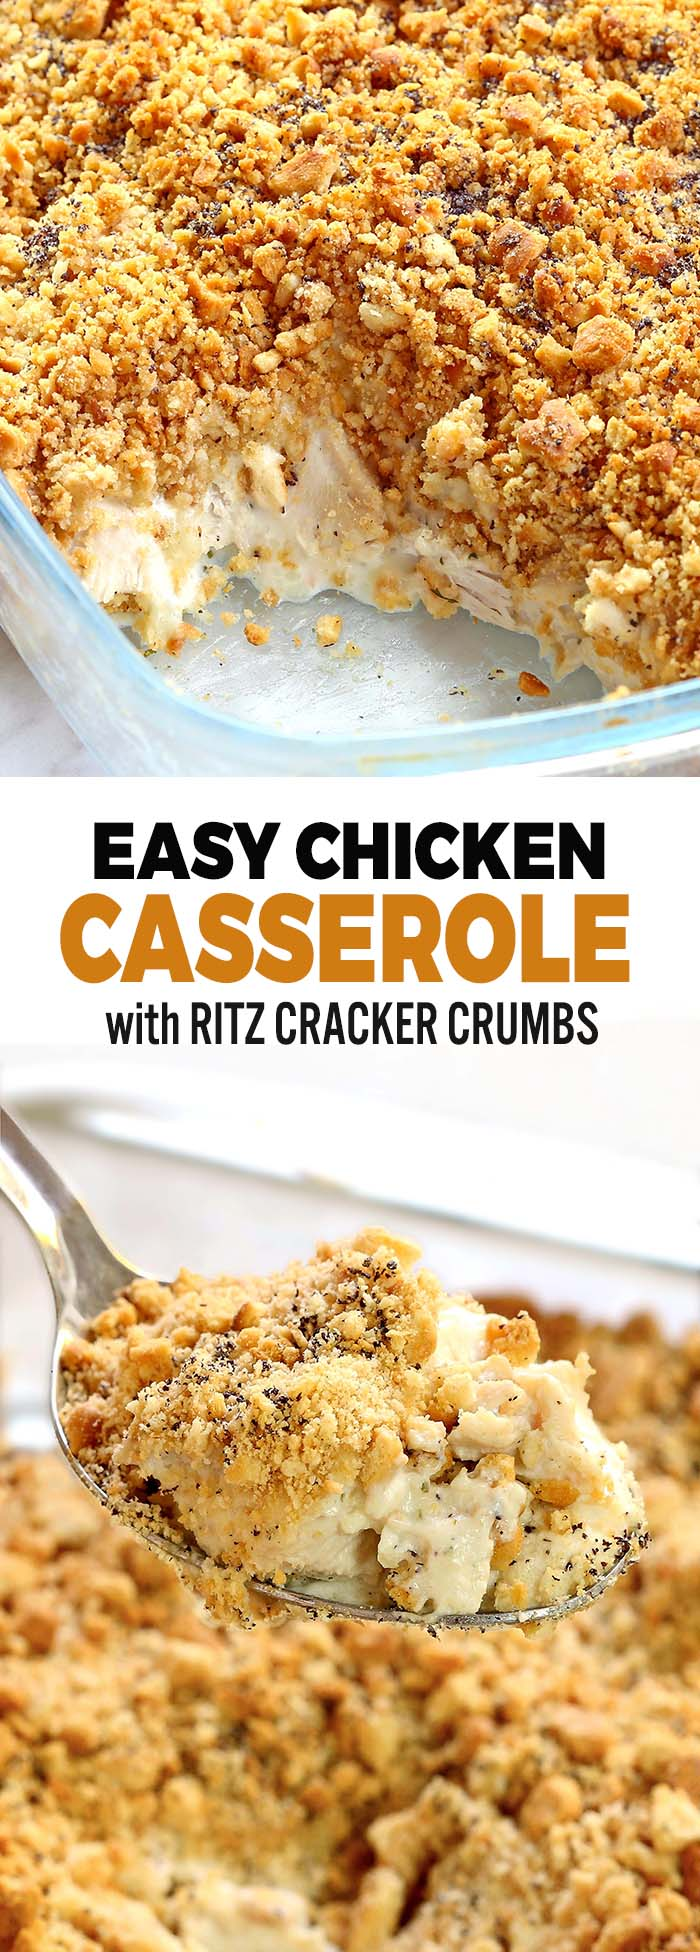 Easy Chicken Casserole – A creamy and easy dinner that your whole family will love. All you need are 6 simple pantry ingredients a few minutes and you are ready to go.